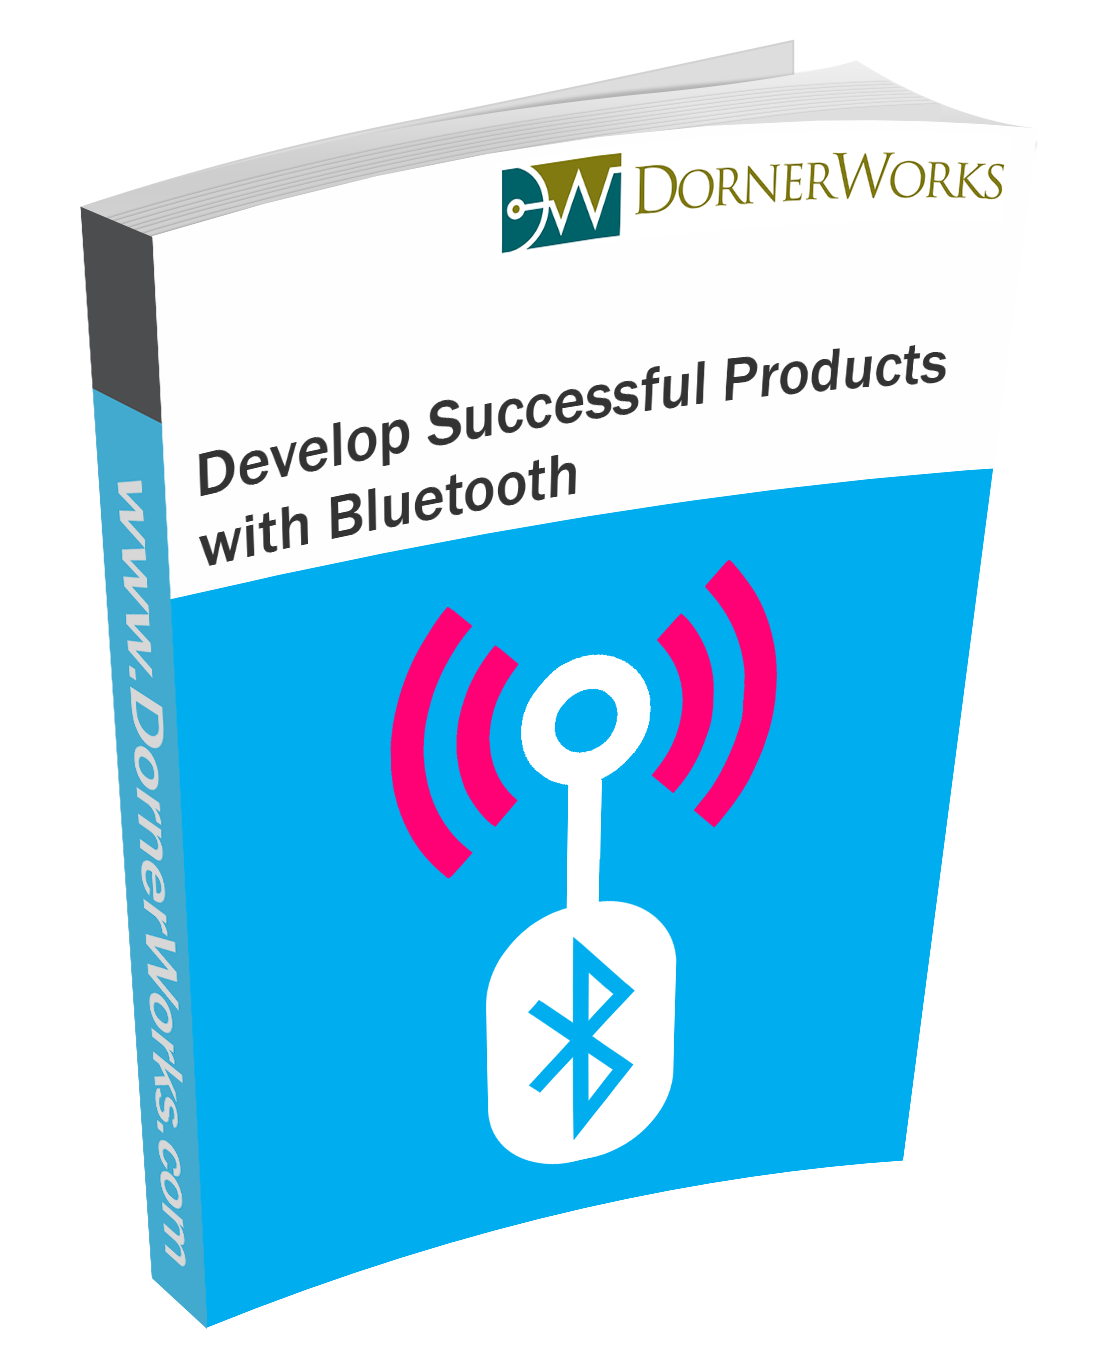 Learn to Develop Successful Products with Bluetooth